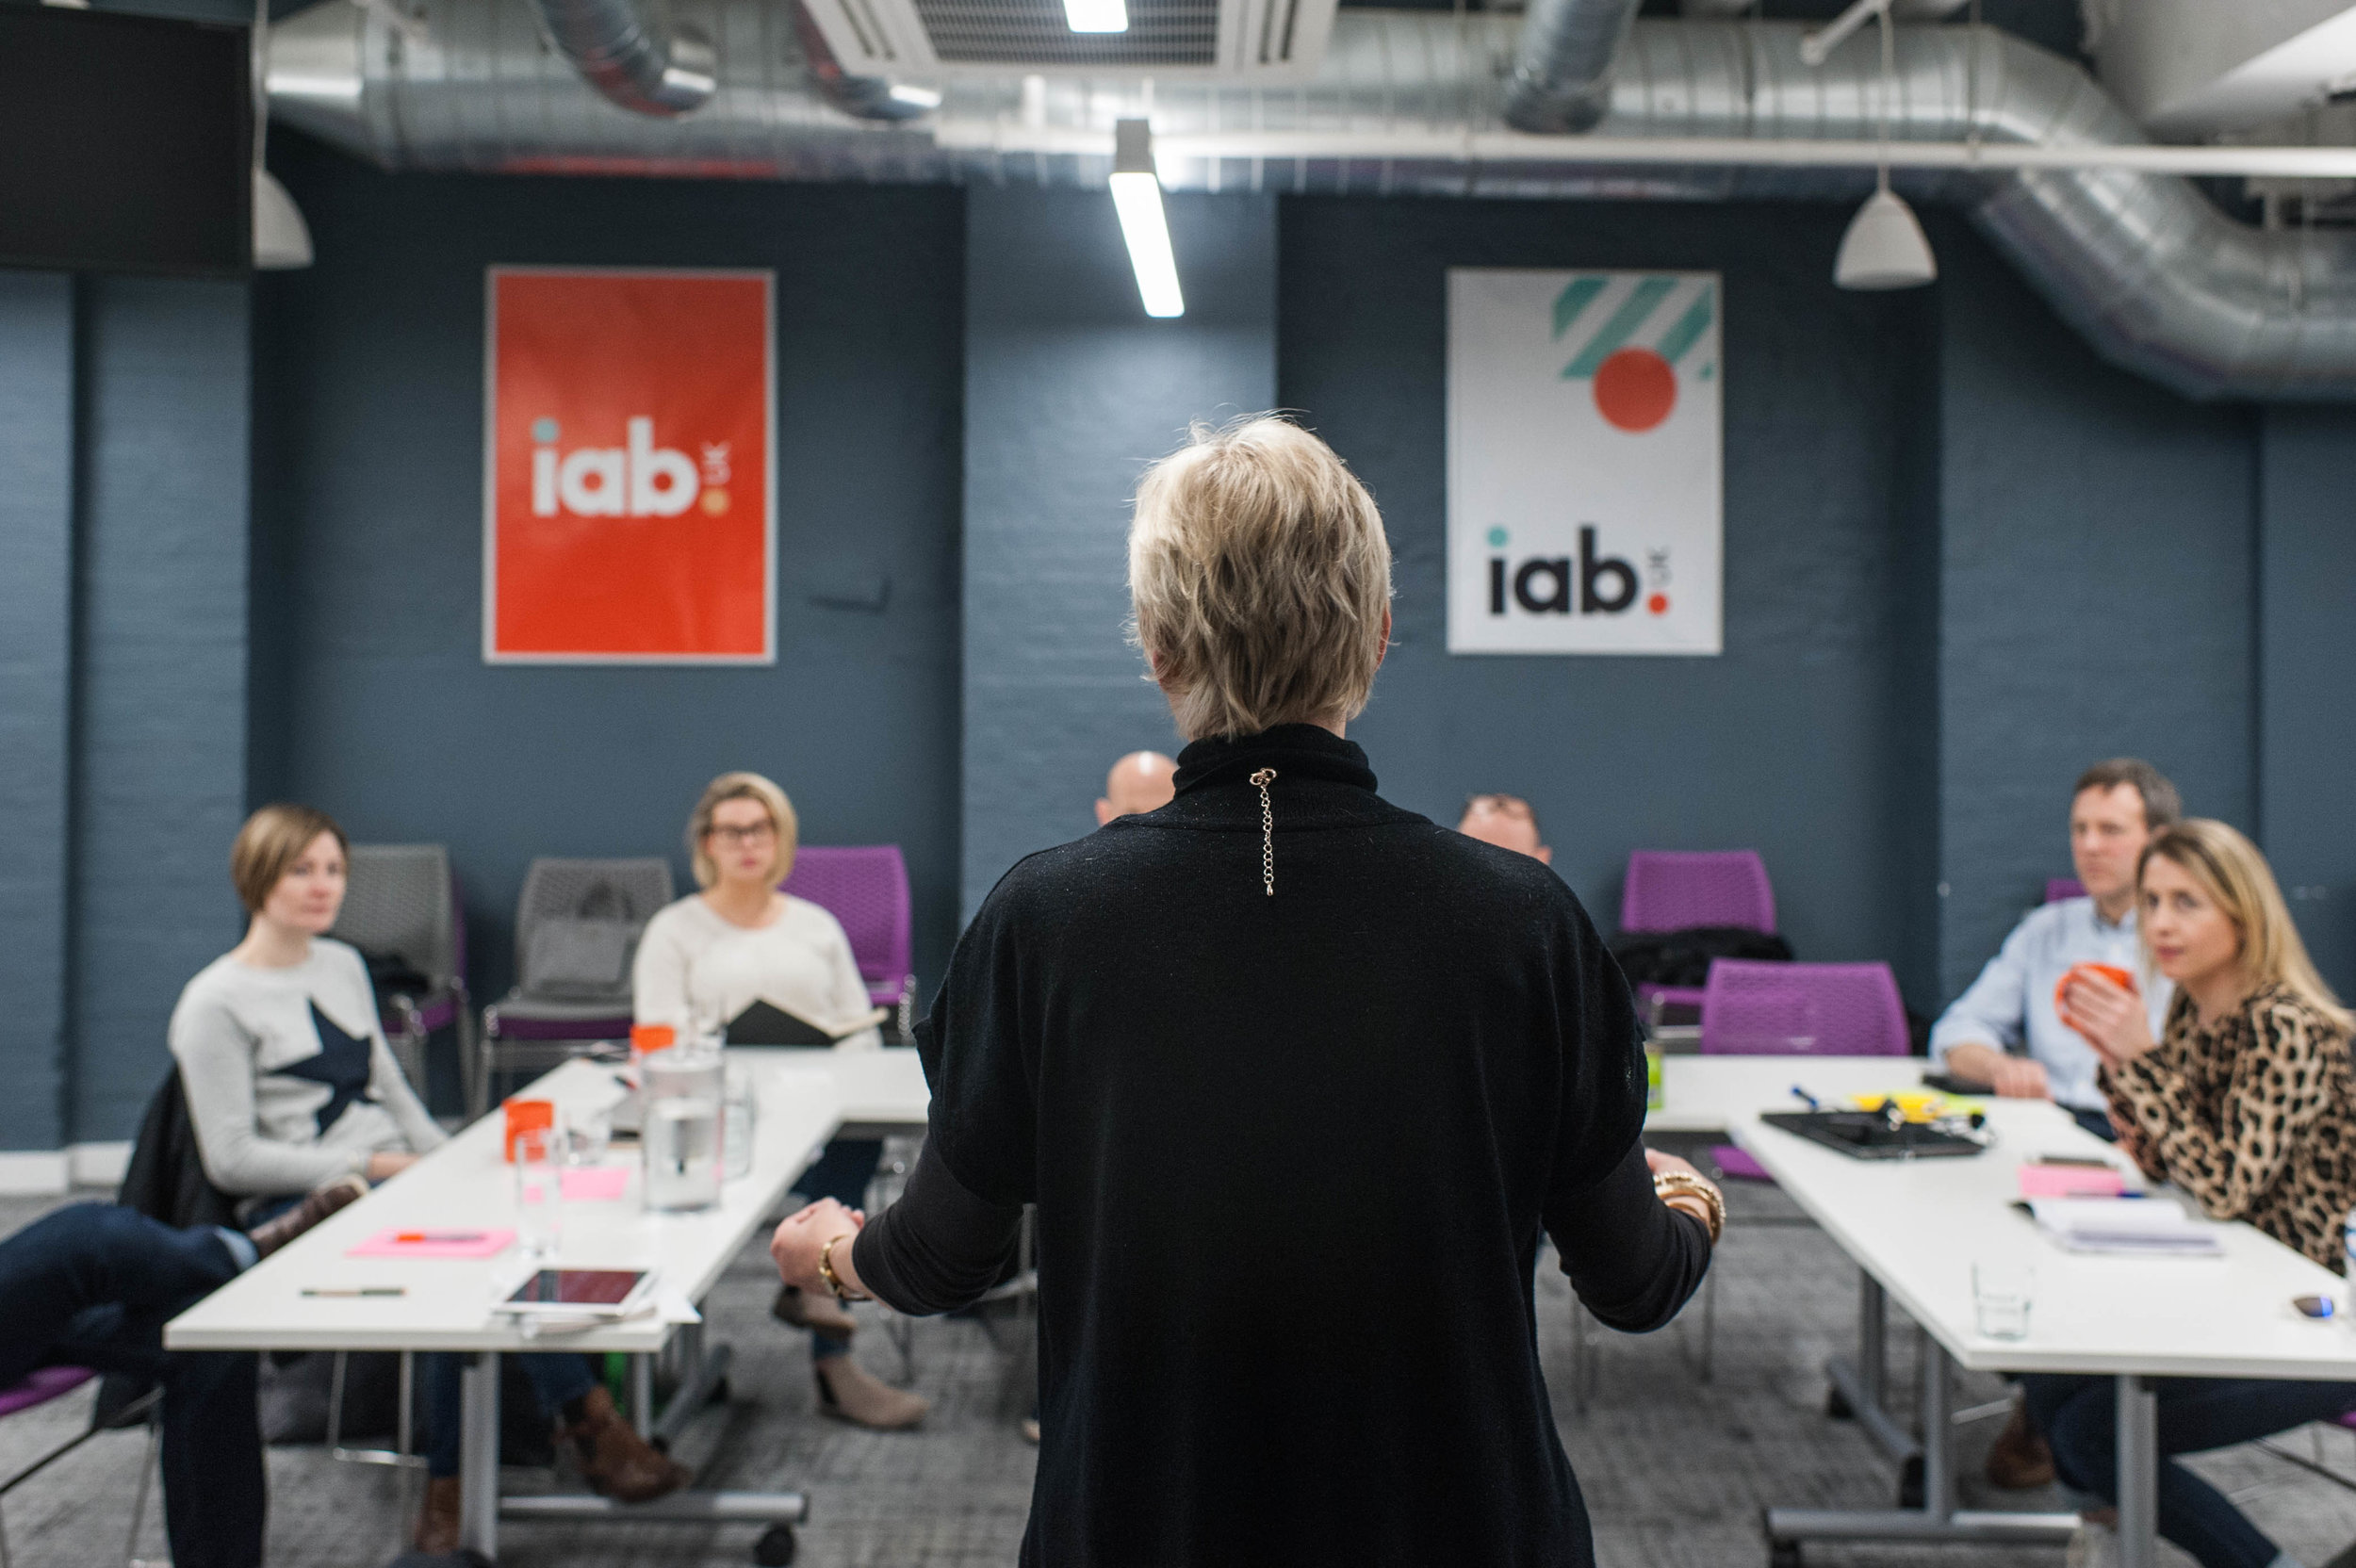 IAB Uk_Incidental Shots_SM (159 of 312).jpg